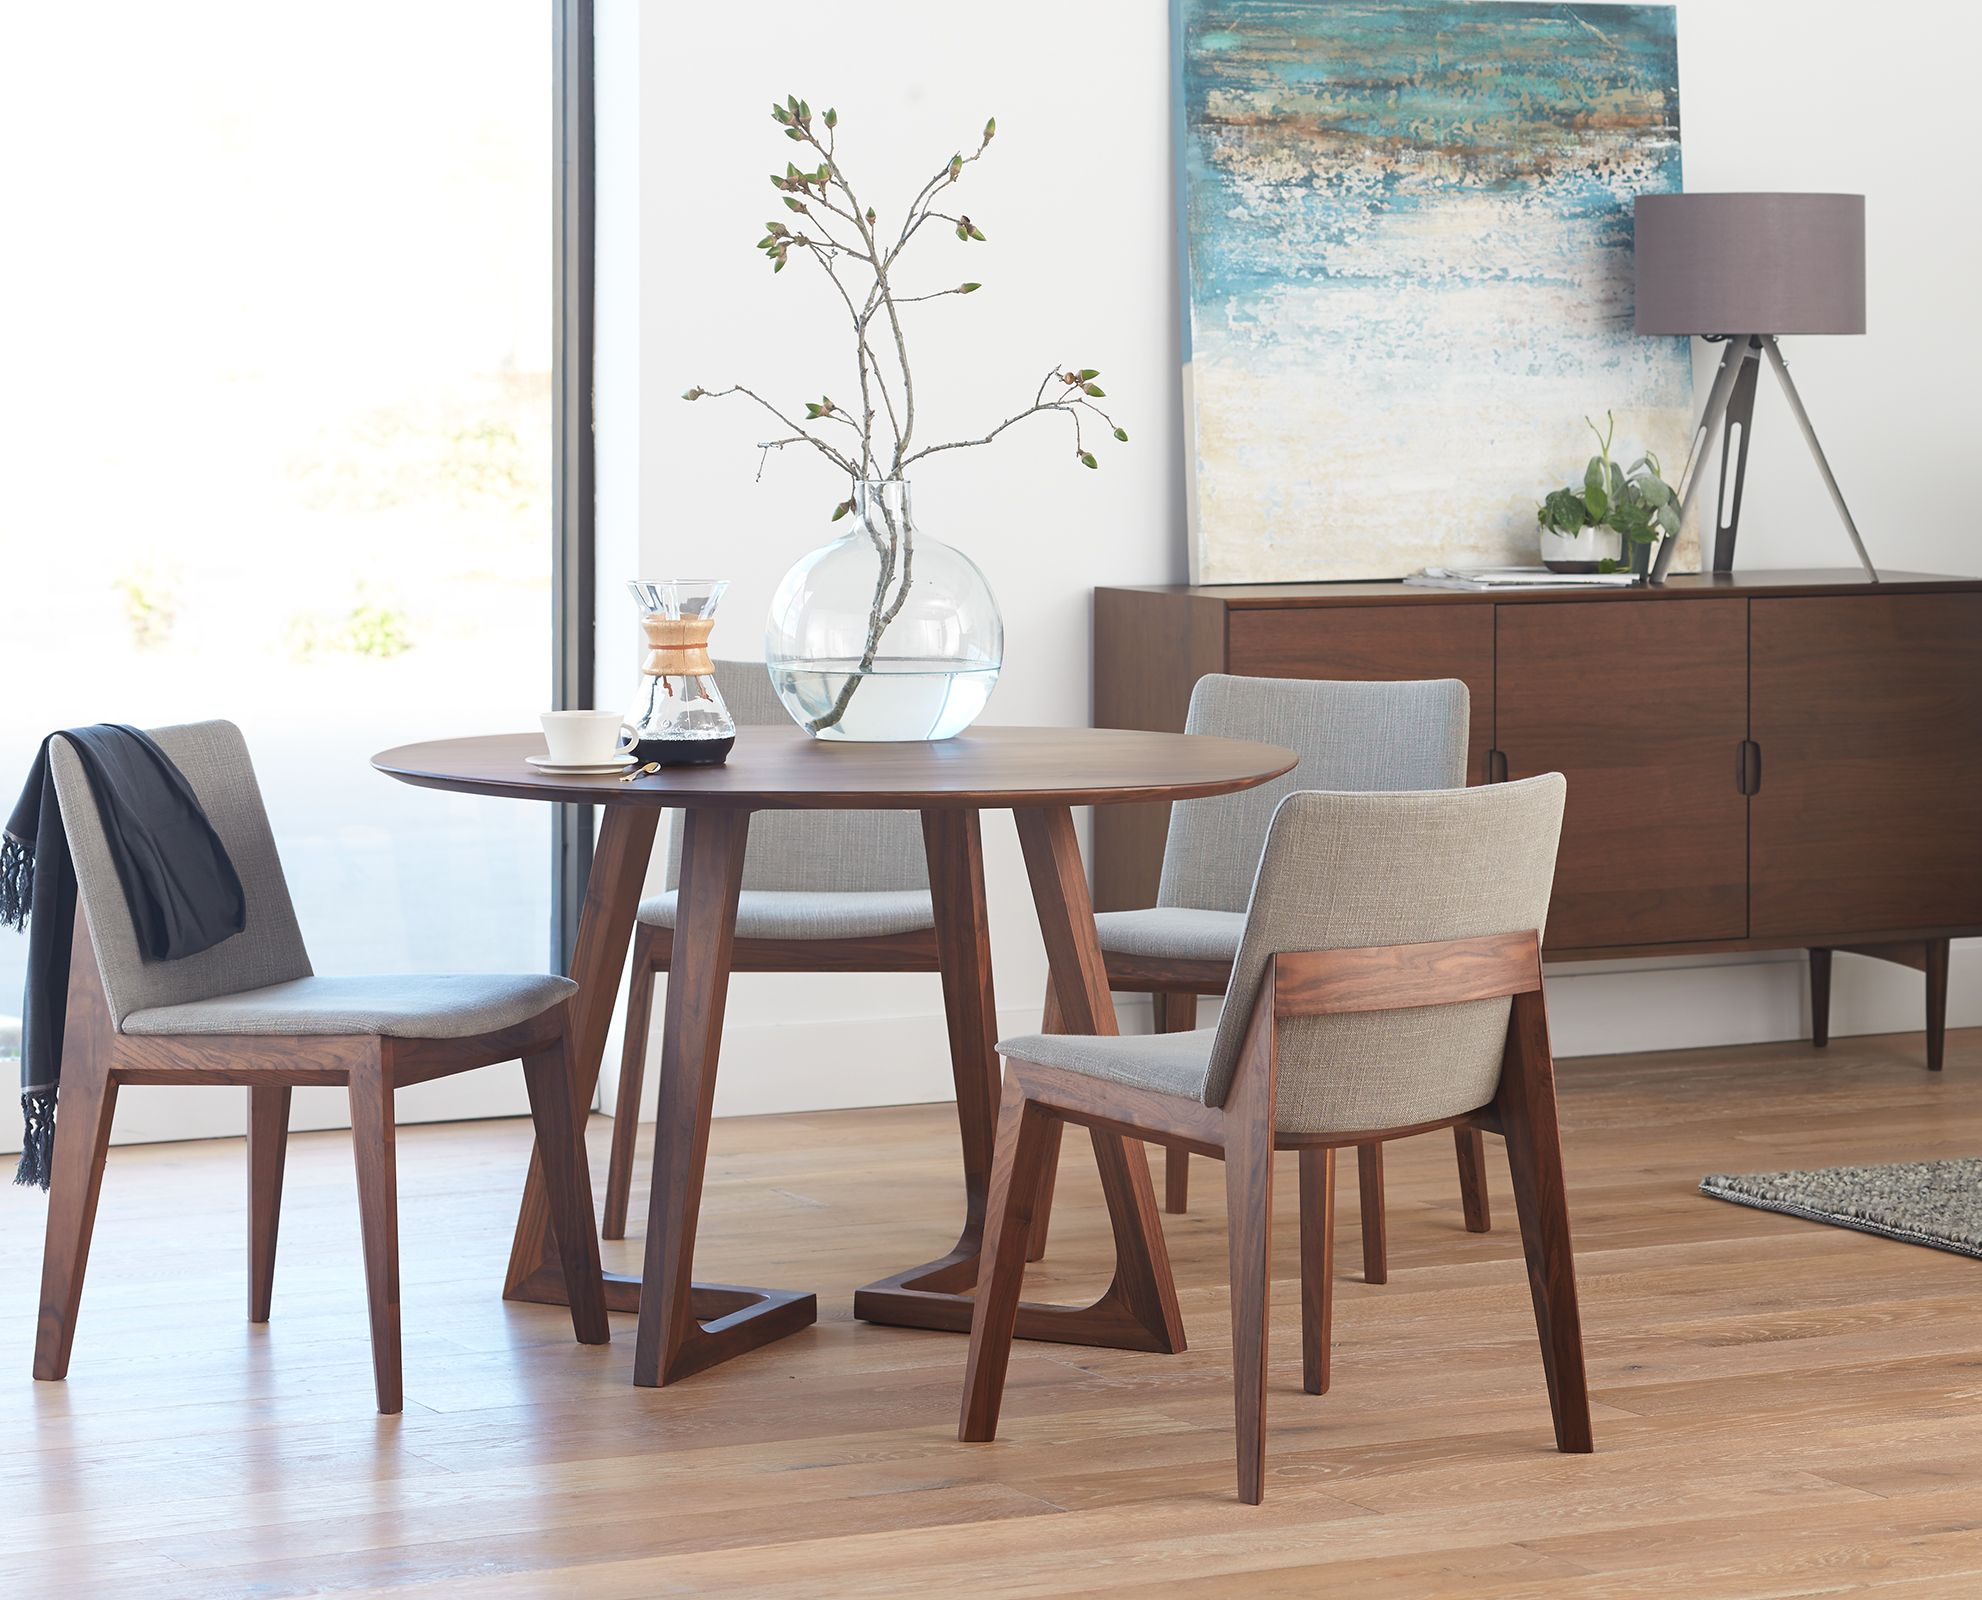 Round table and chairs from dania condo pinterest for In n out dining room hours